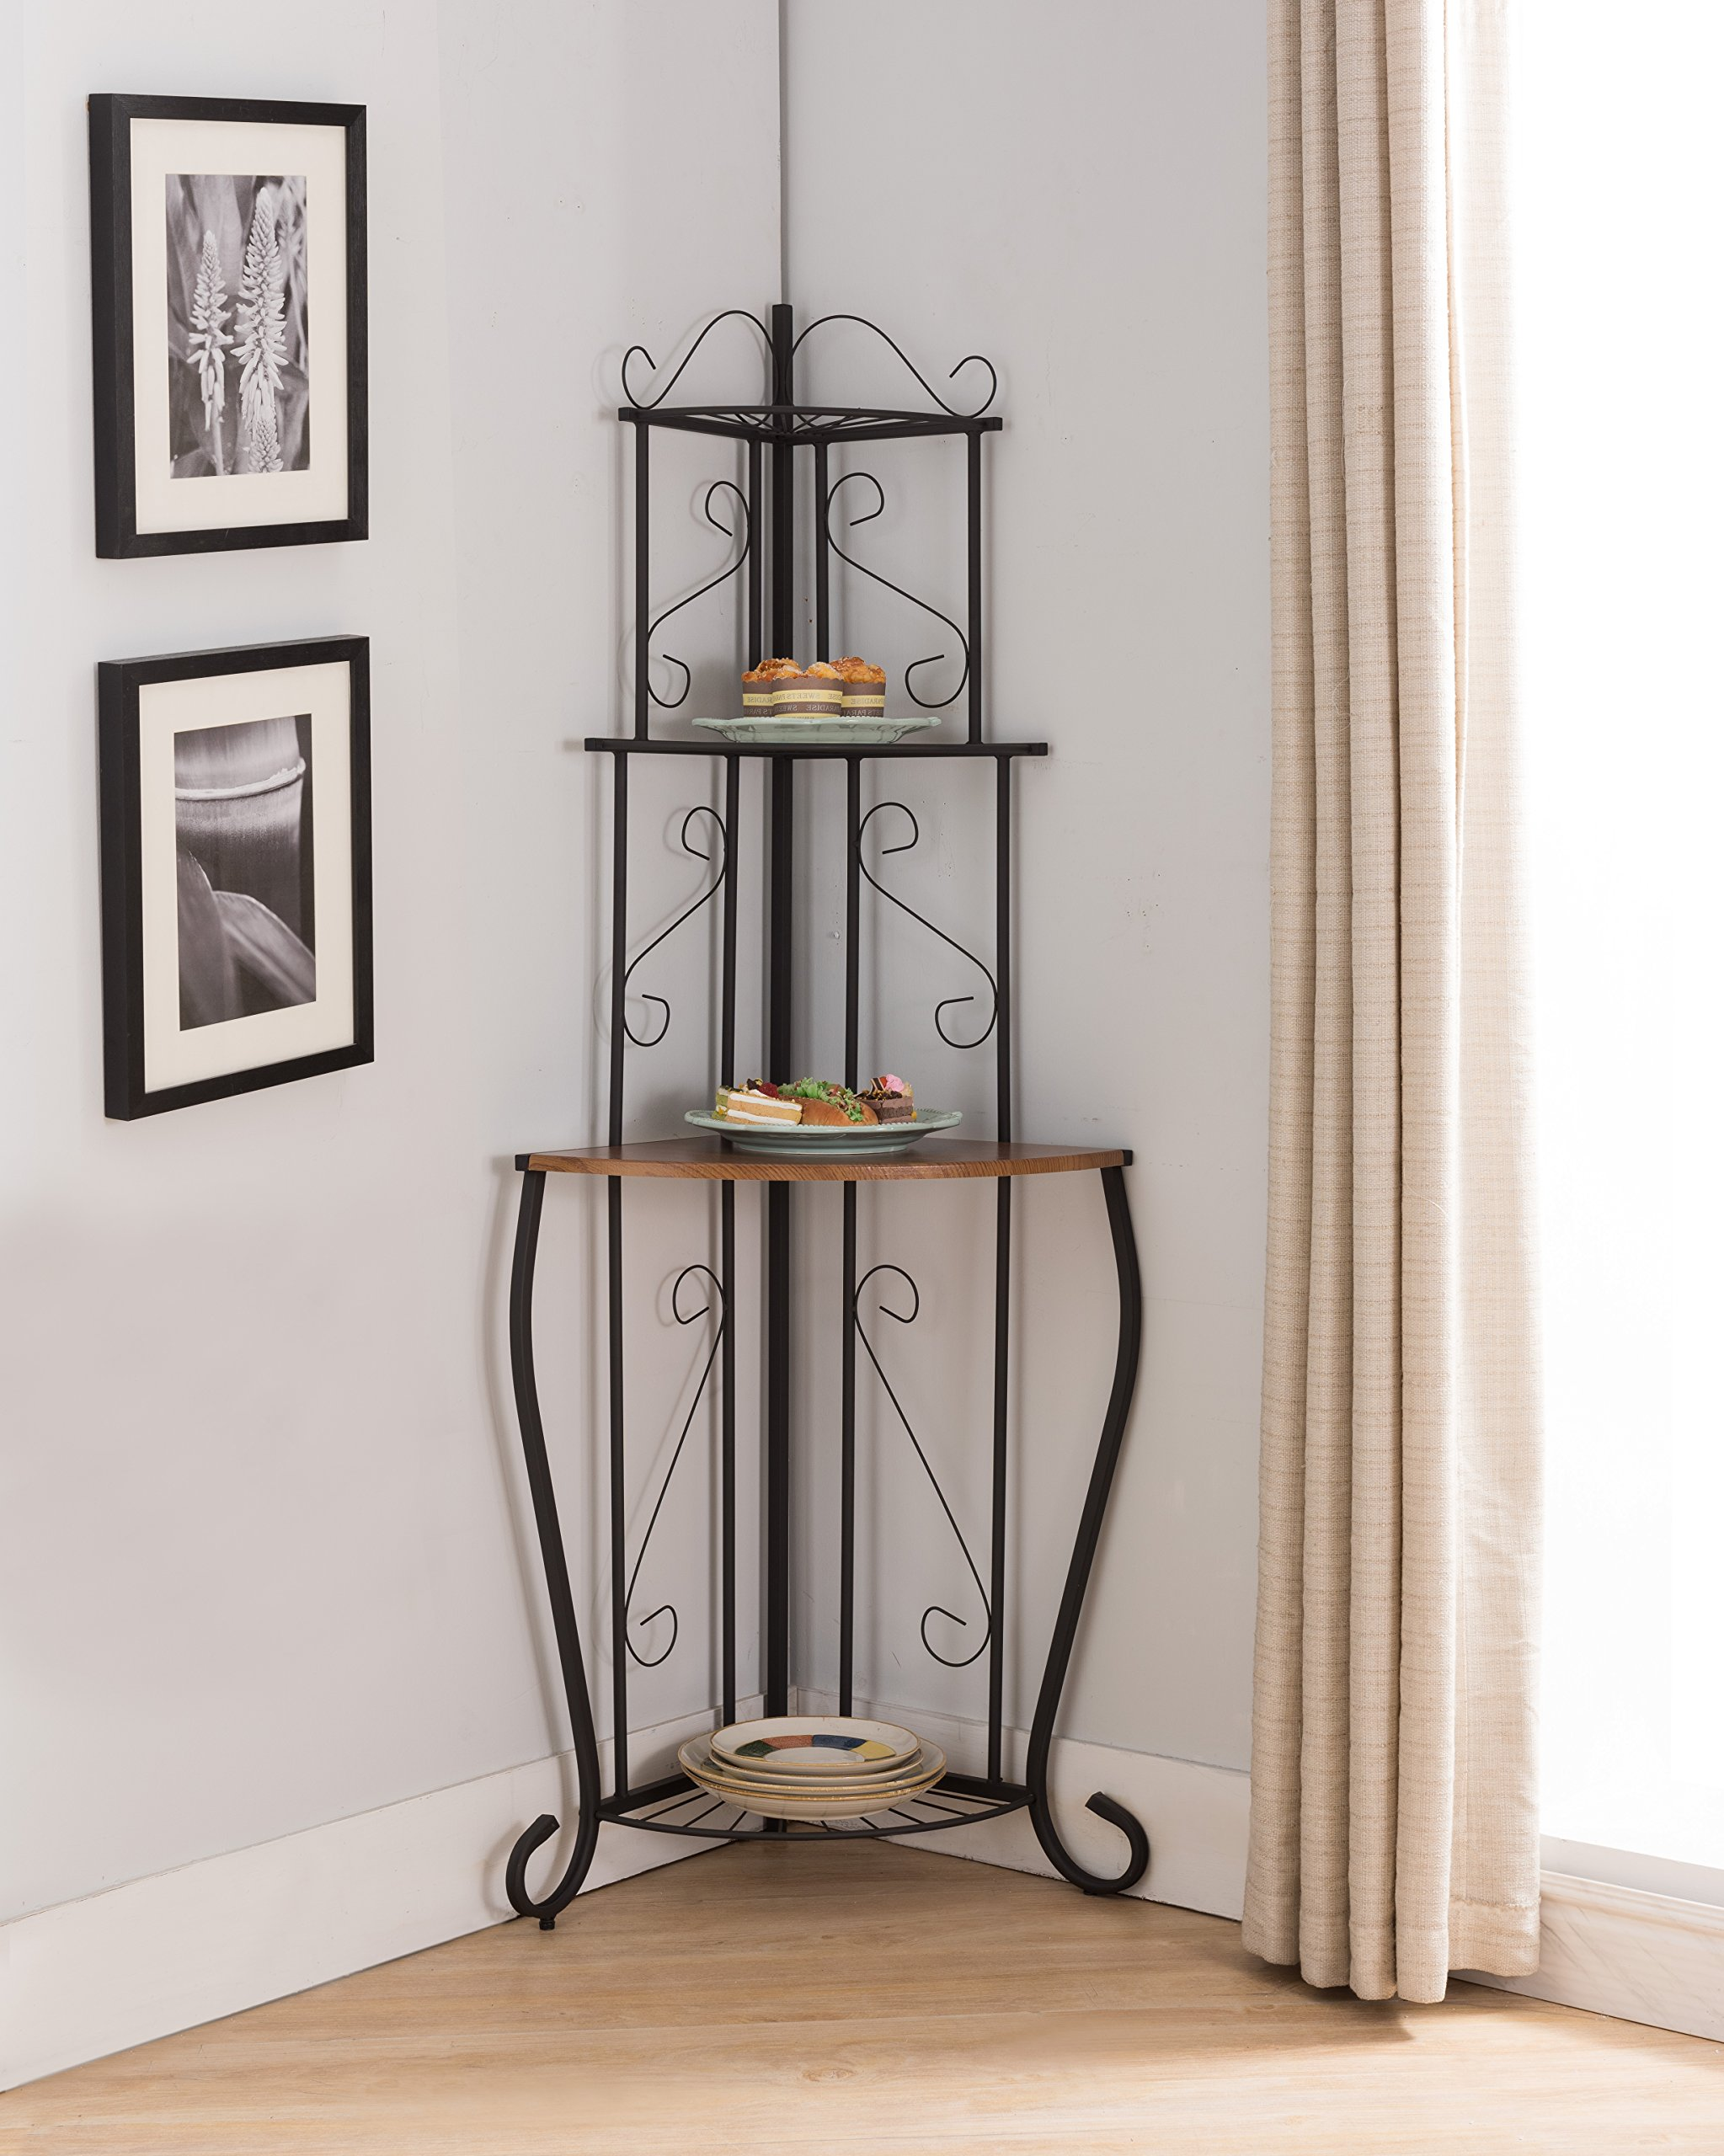 Black & Walnut Metal 3 Tier Corner Kitchen Bakers Rack Display Stand Organizer With Storage Shelves by Pilaster Designs